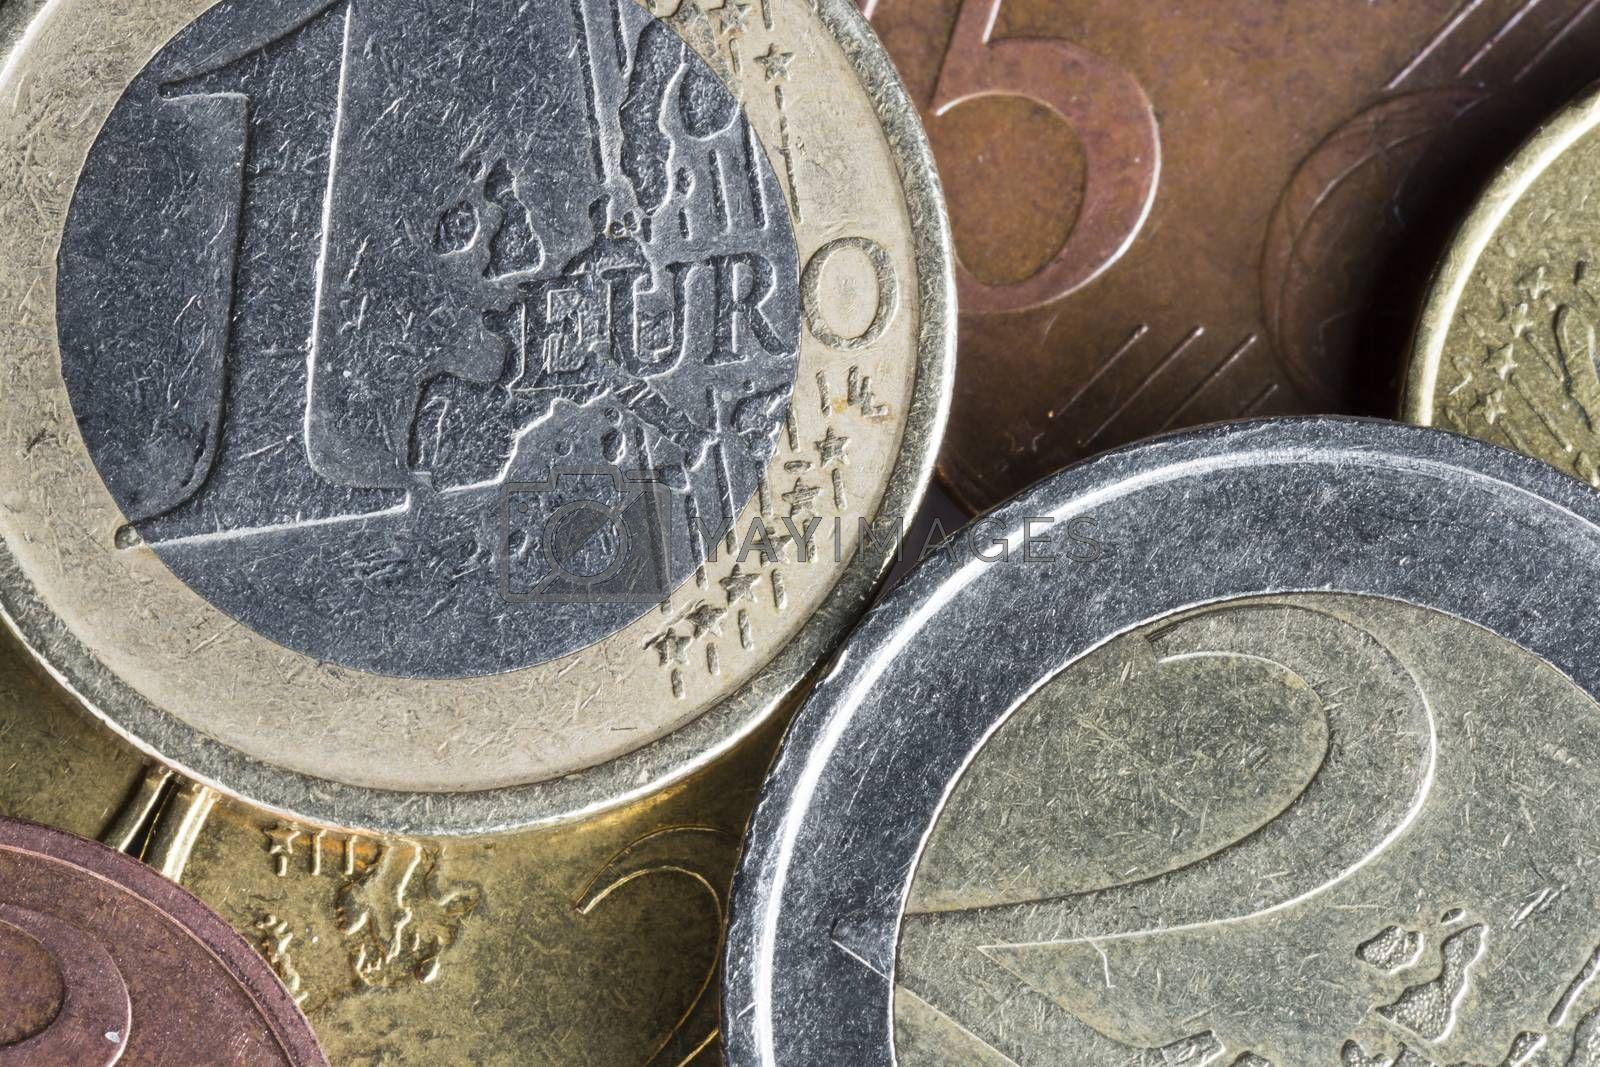 Euro Coins on Top of Each Other with the one Euro and the 2 Euro being most prominent.